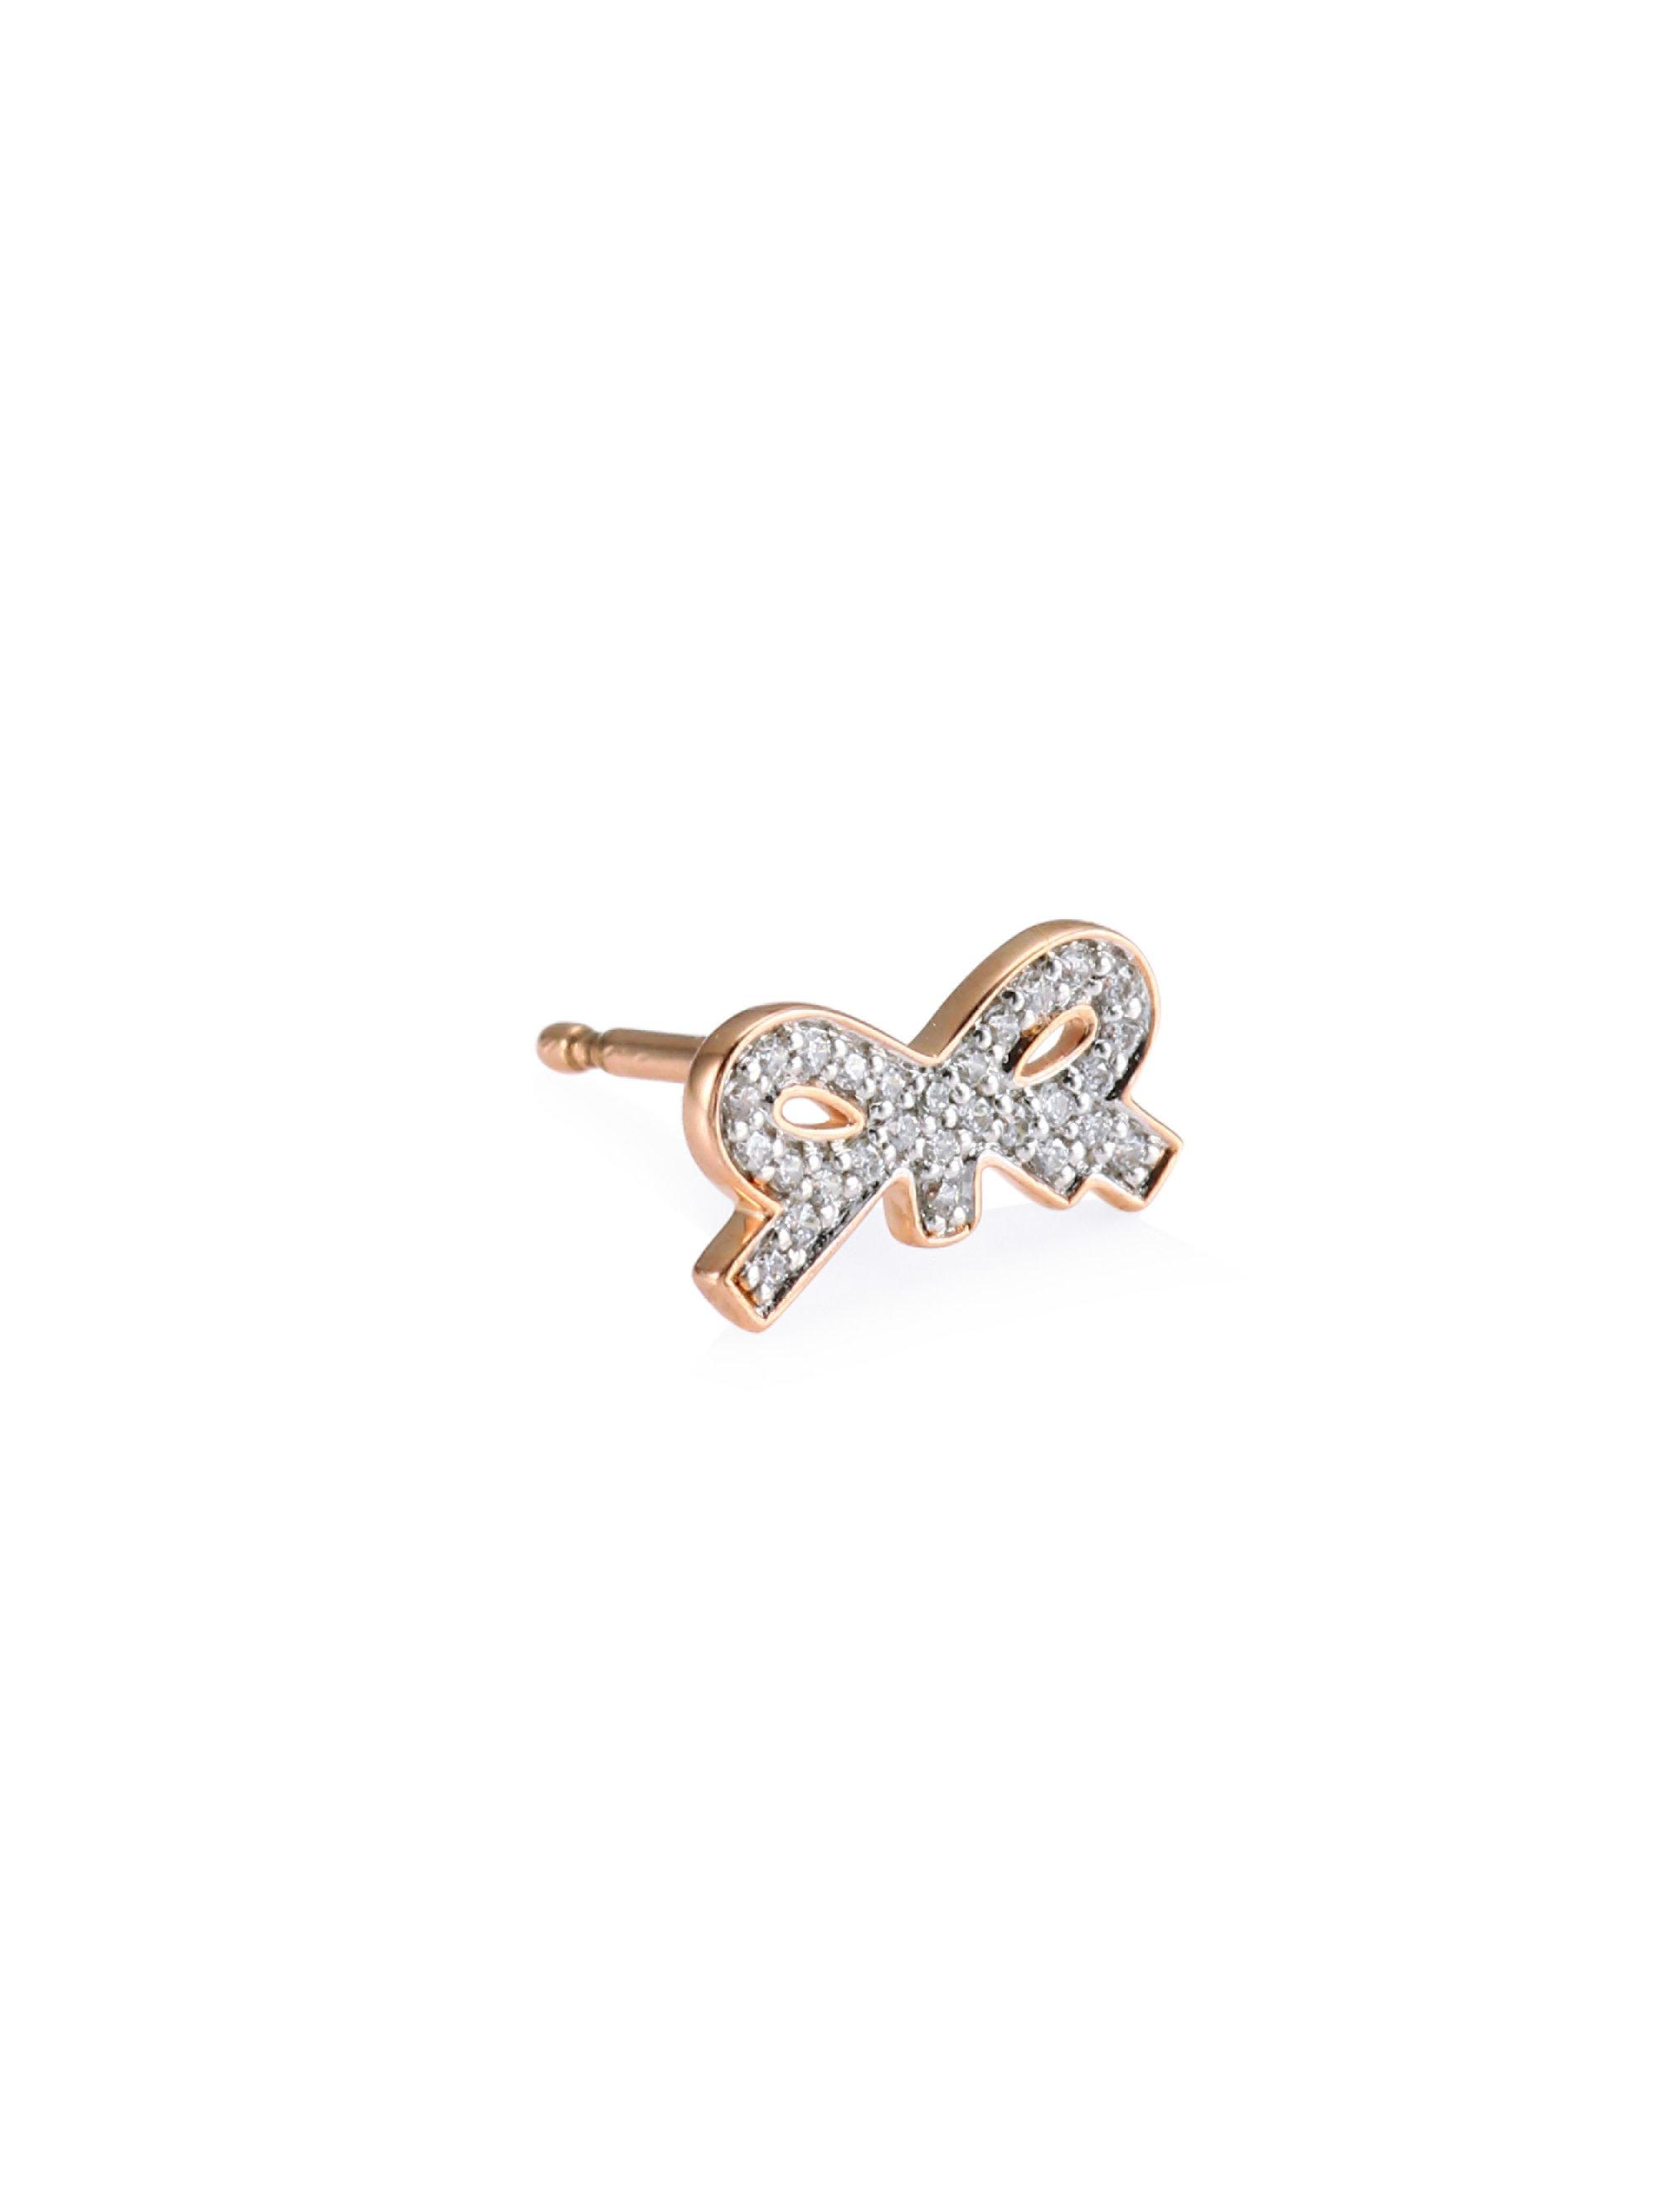 Single Tiny Diamond Star Stud Earring in 18K Rose Gold and Diamonds Ginette NY Ka3mHxGUDR